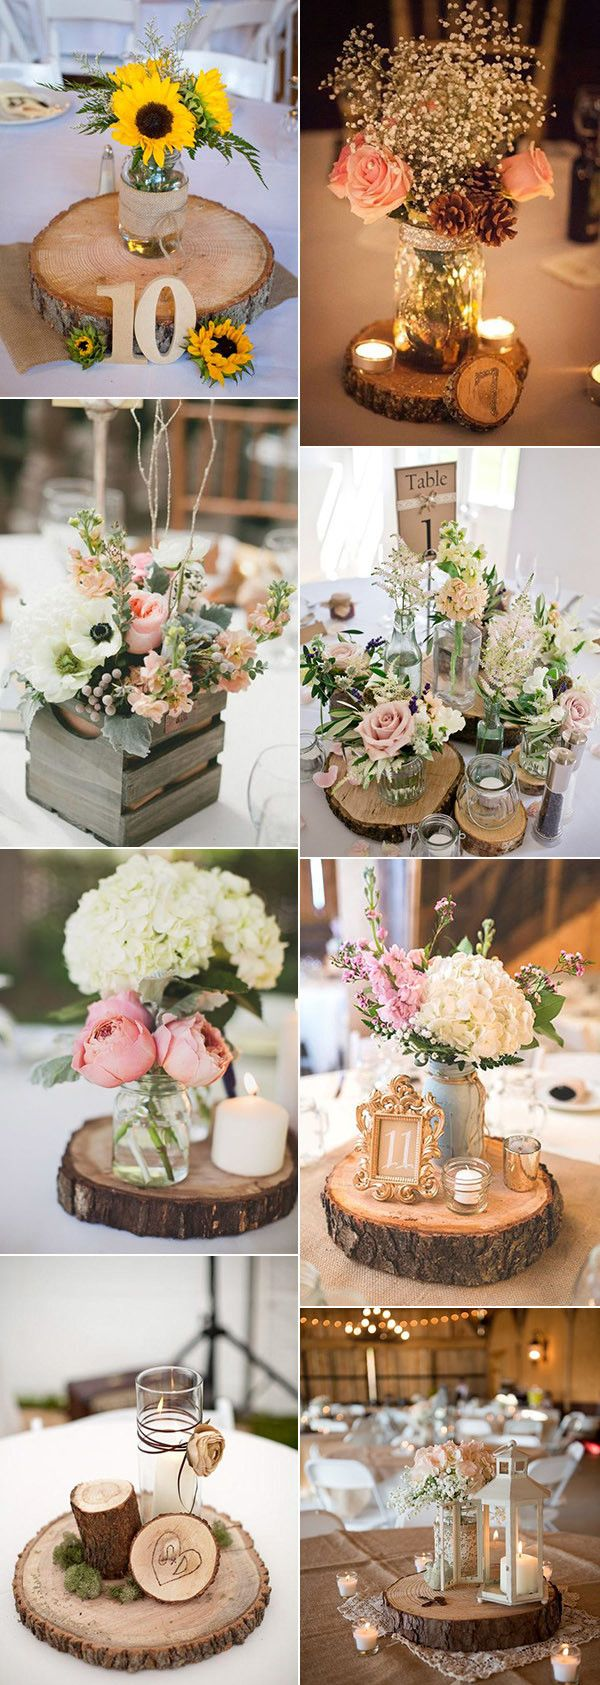 Wood themed wedding centerpieces for rustic wedding ideas 2017 wood themed wedding centerpieces for rustic wedding ideas 2017 trends junglespirit Choice Image